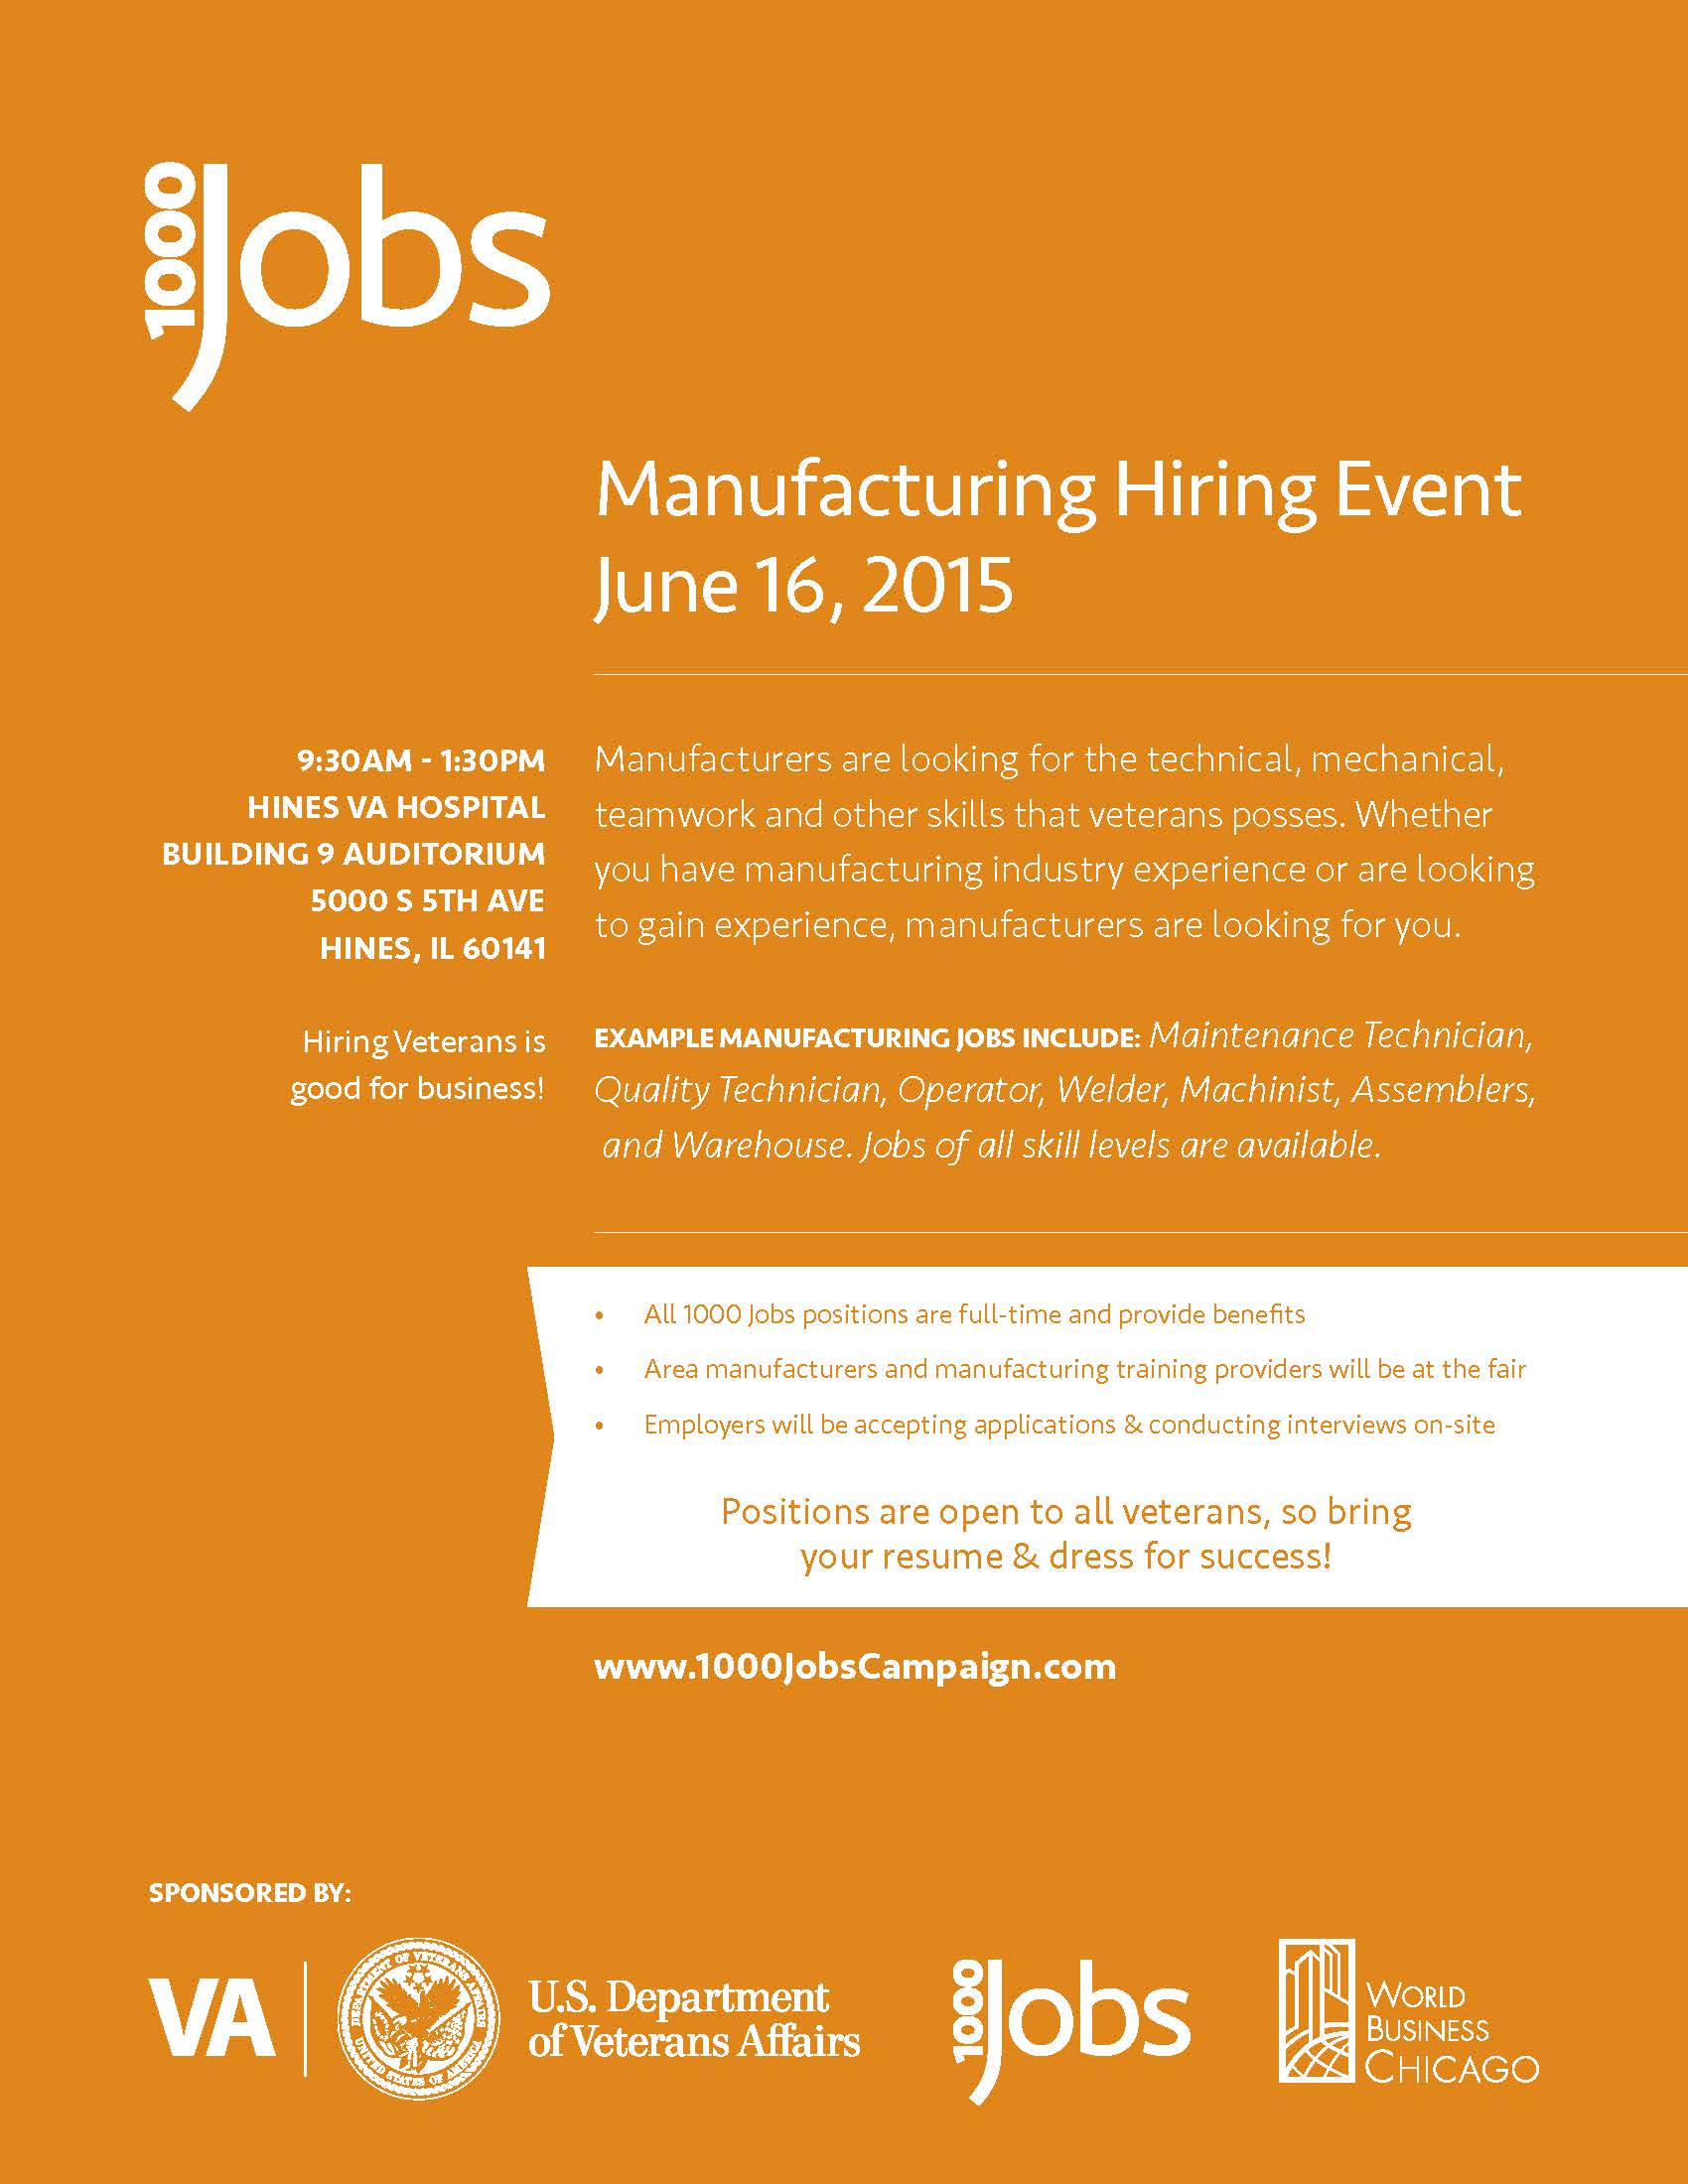 Hines VA Hospital to host Manufacturing Hiring Event